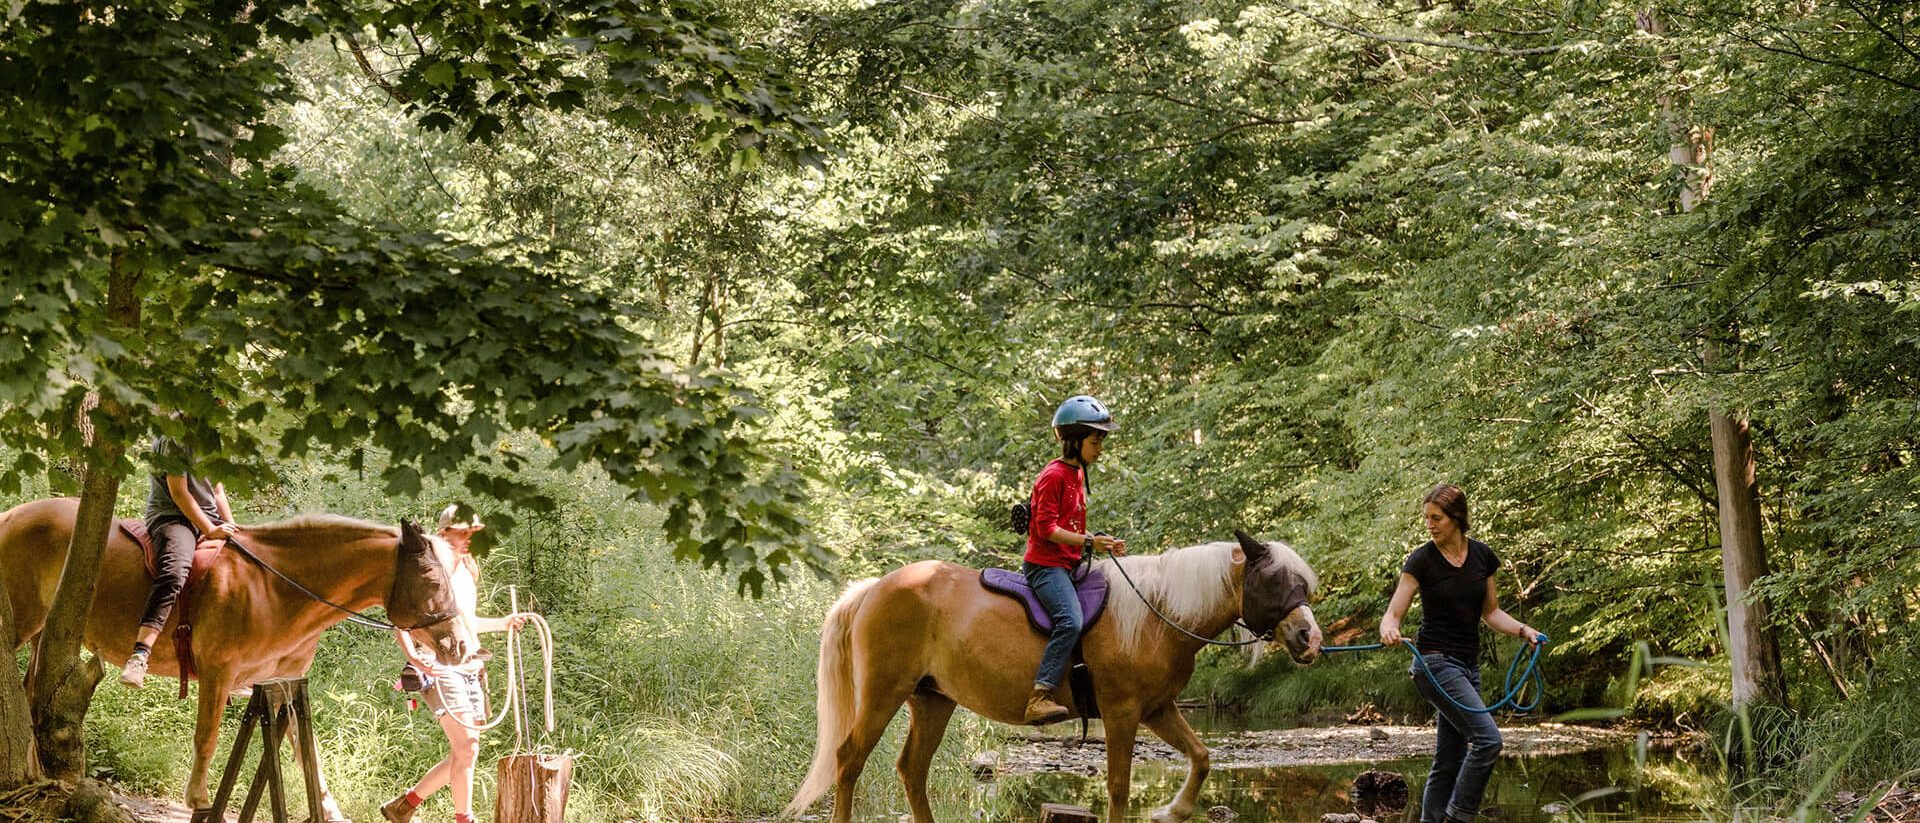 summer campers riding horses in woods